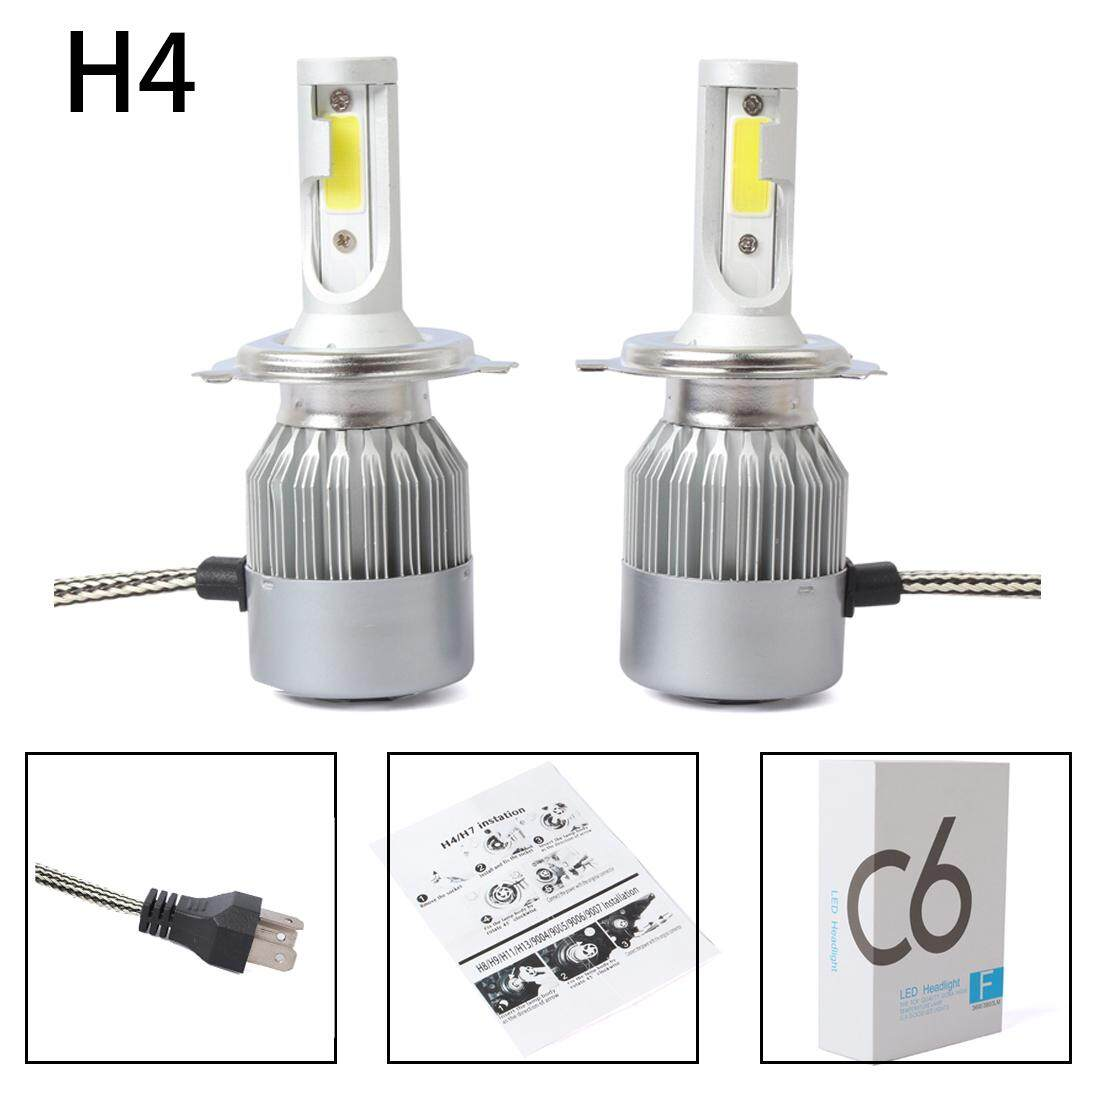 New 2pcs C6 Led Car Headlight Kit Cob H4 36w 7600lm White Light Bulbs By Yoyonow.